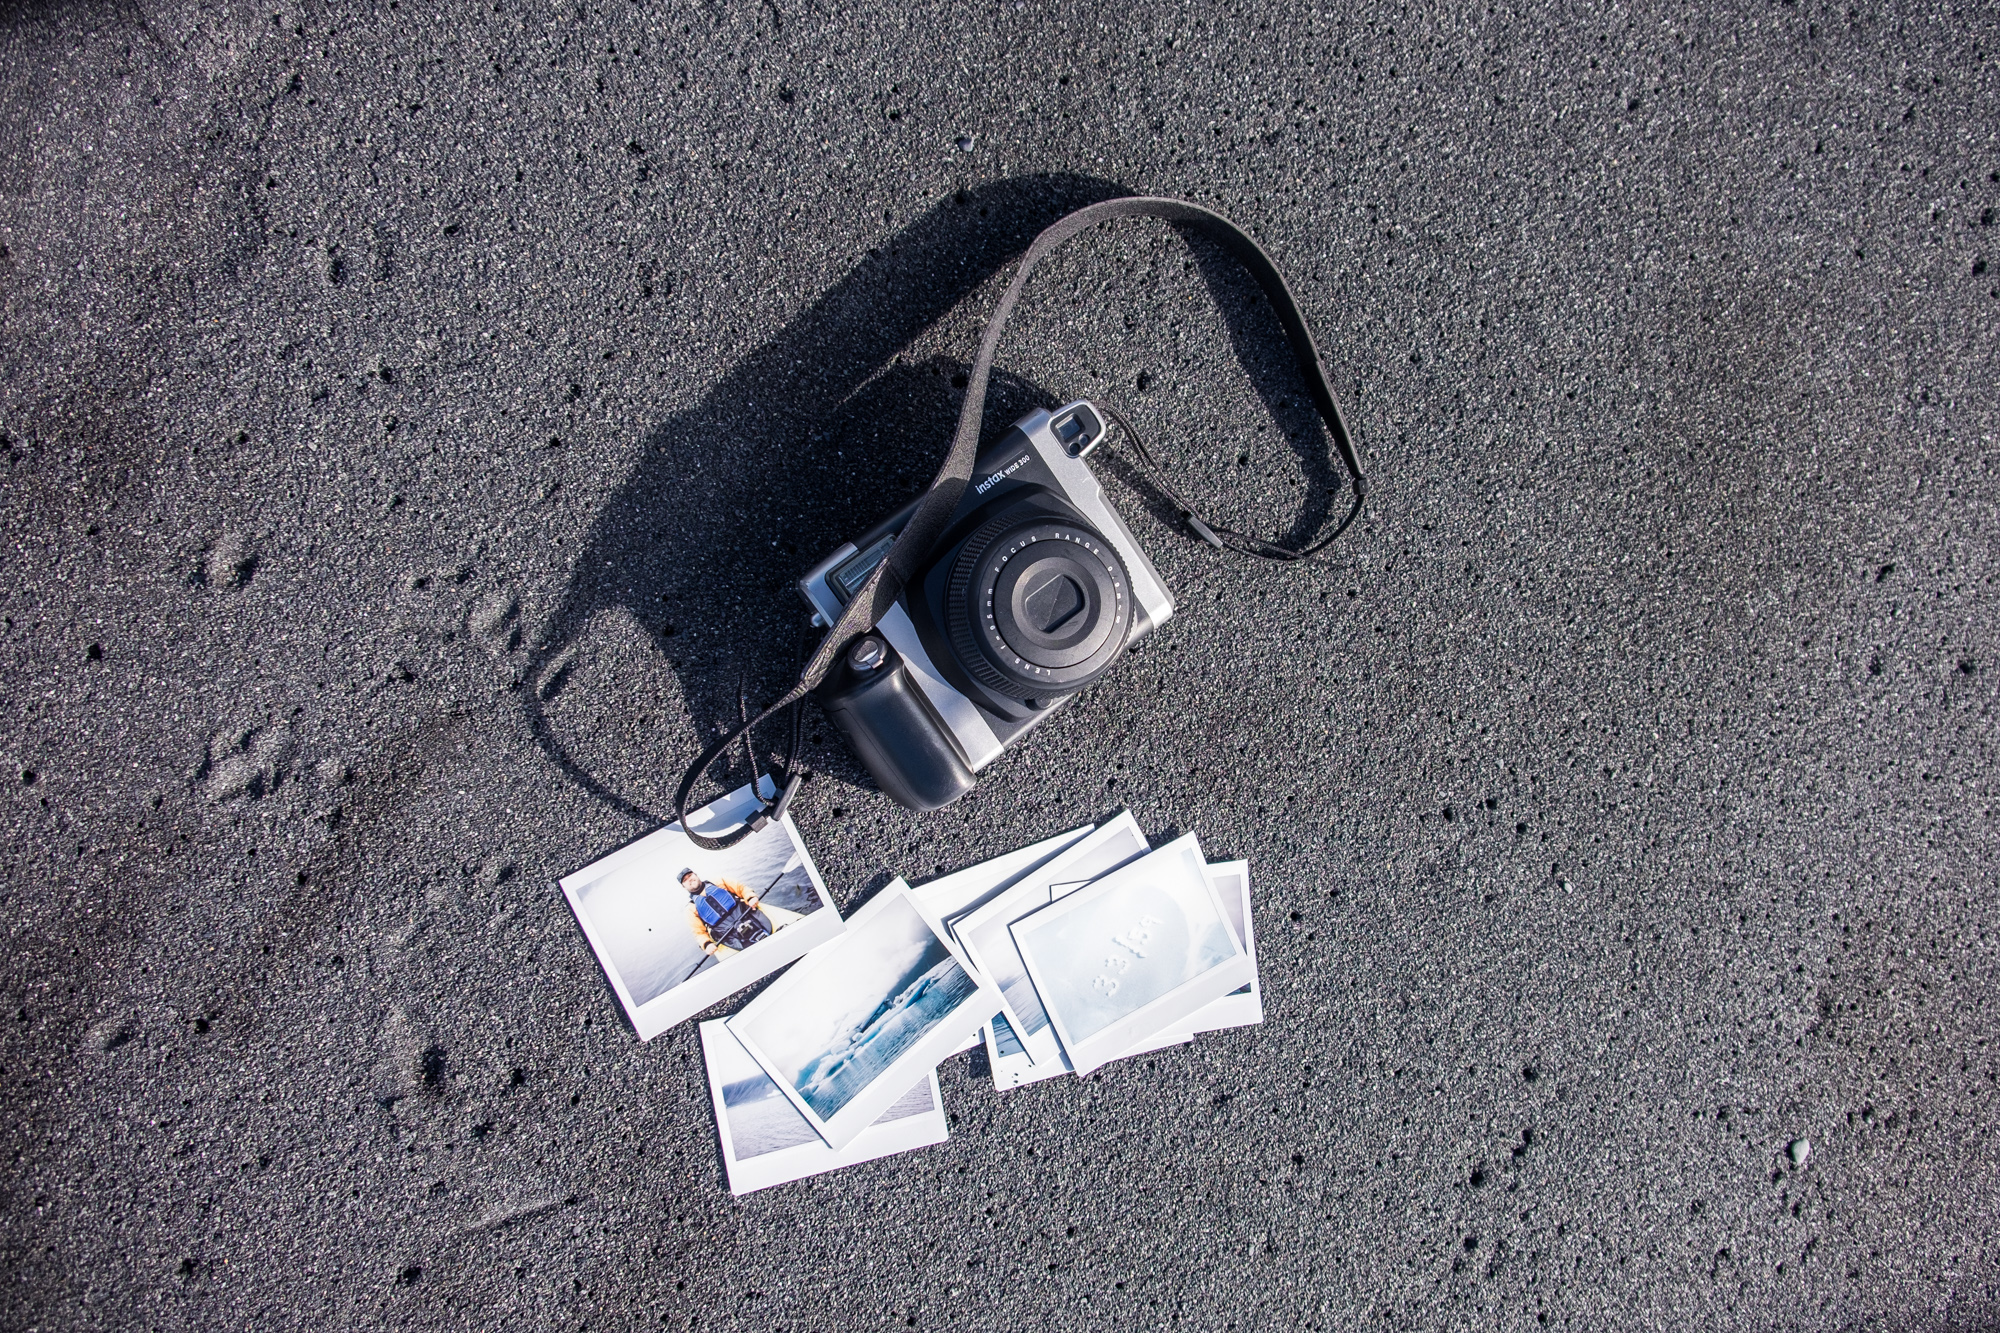 Instaxing on the beach in Kenai Fjords National Park in Alaska.